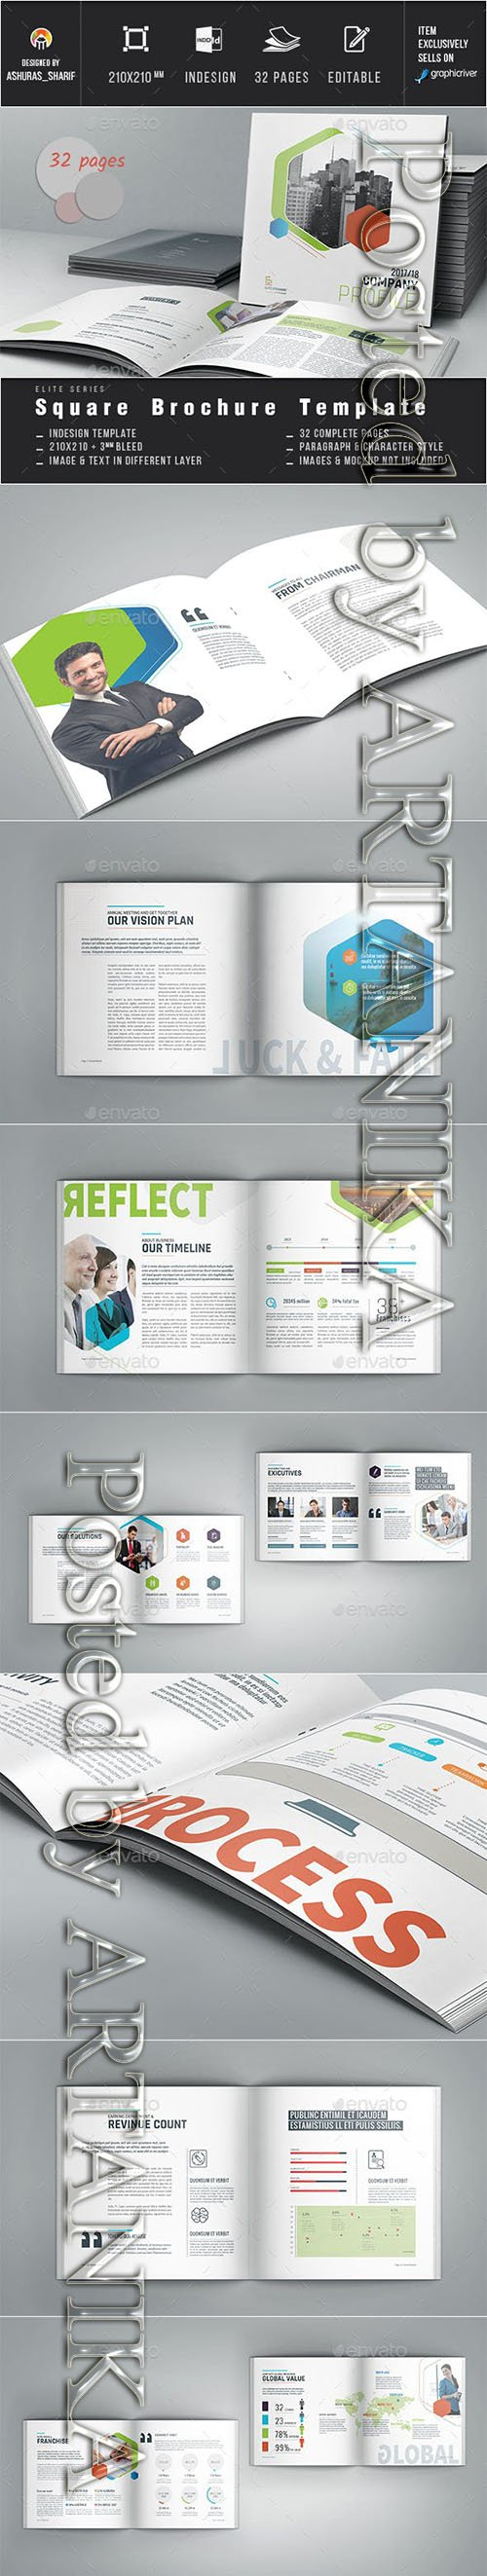 Graphicriver - Company Profile 18623766